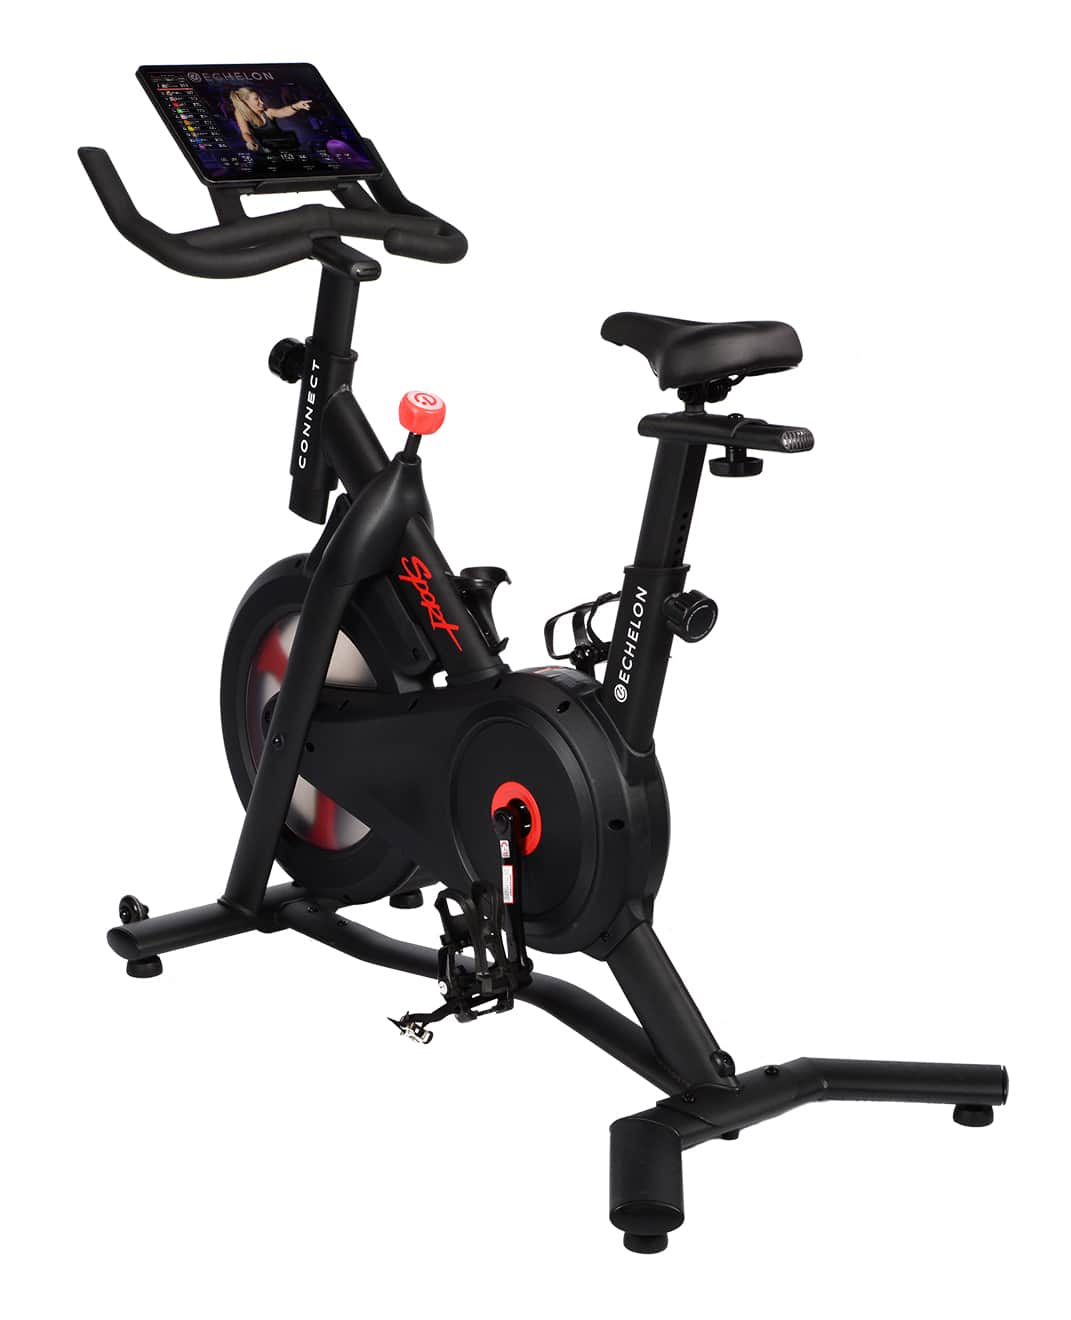 Echelon Connect Sport Indoor Cycling Exercise Bike - $499 (back in stock) YMMV